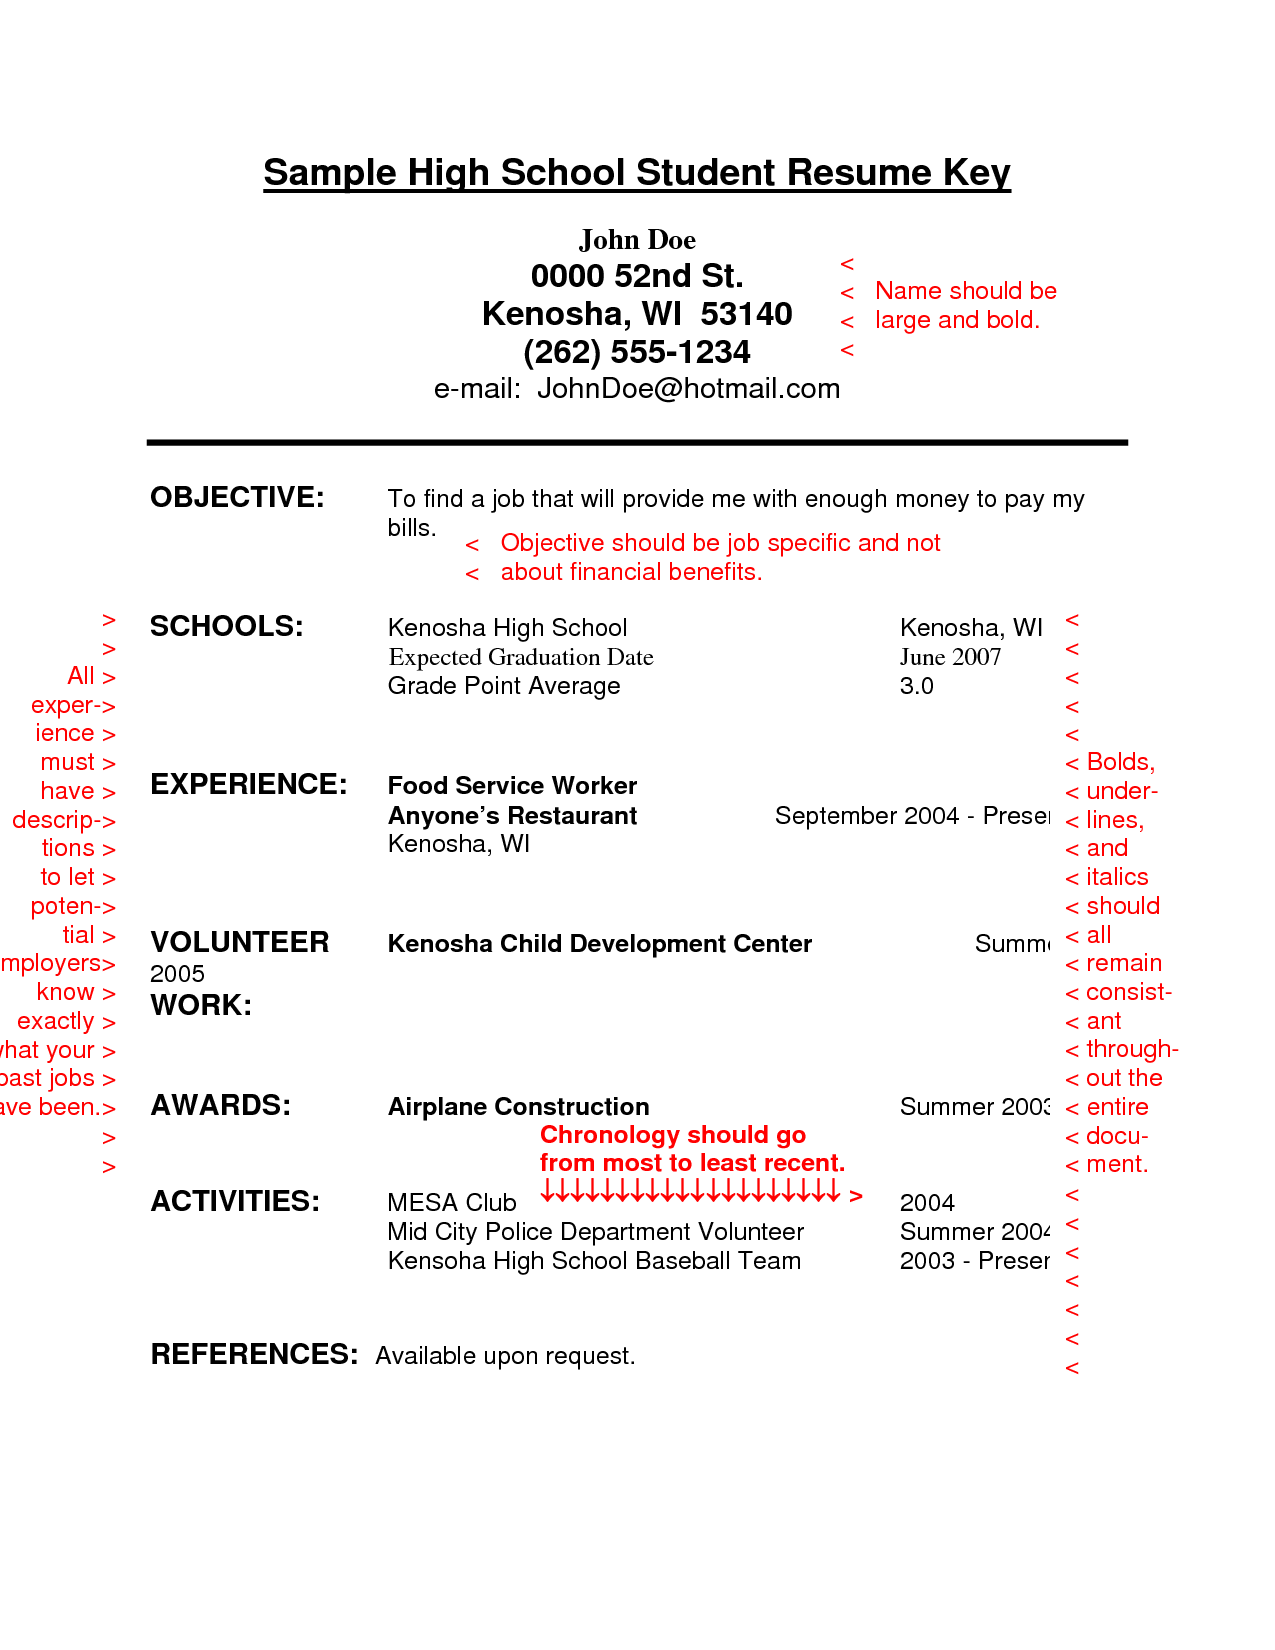 resume format high school student